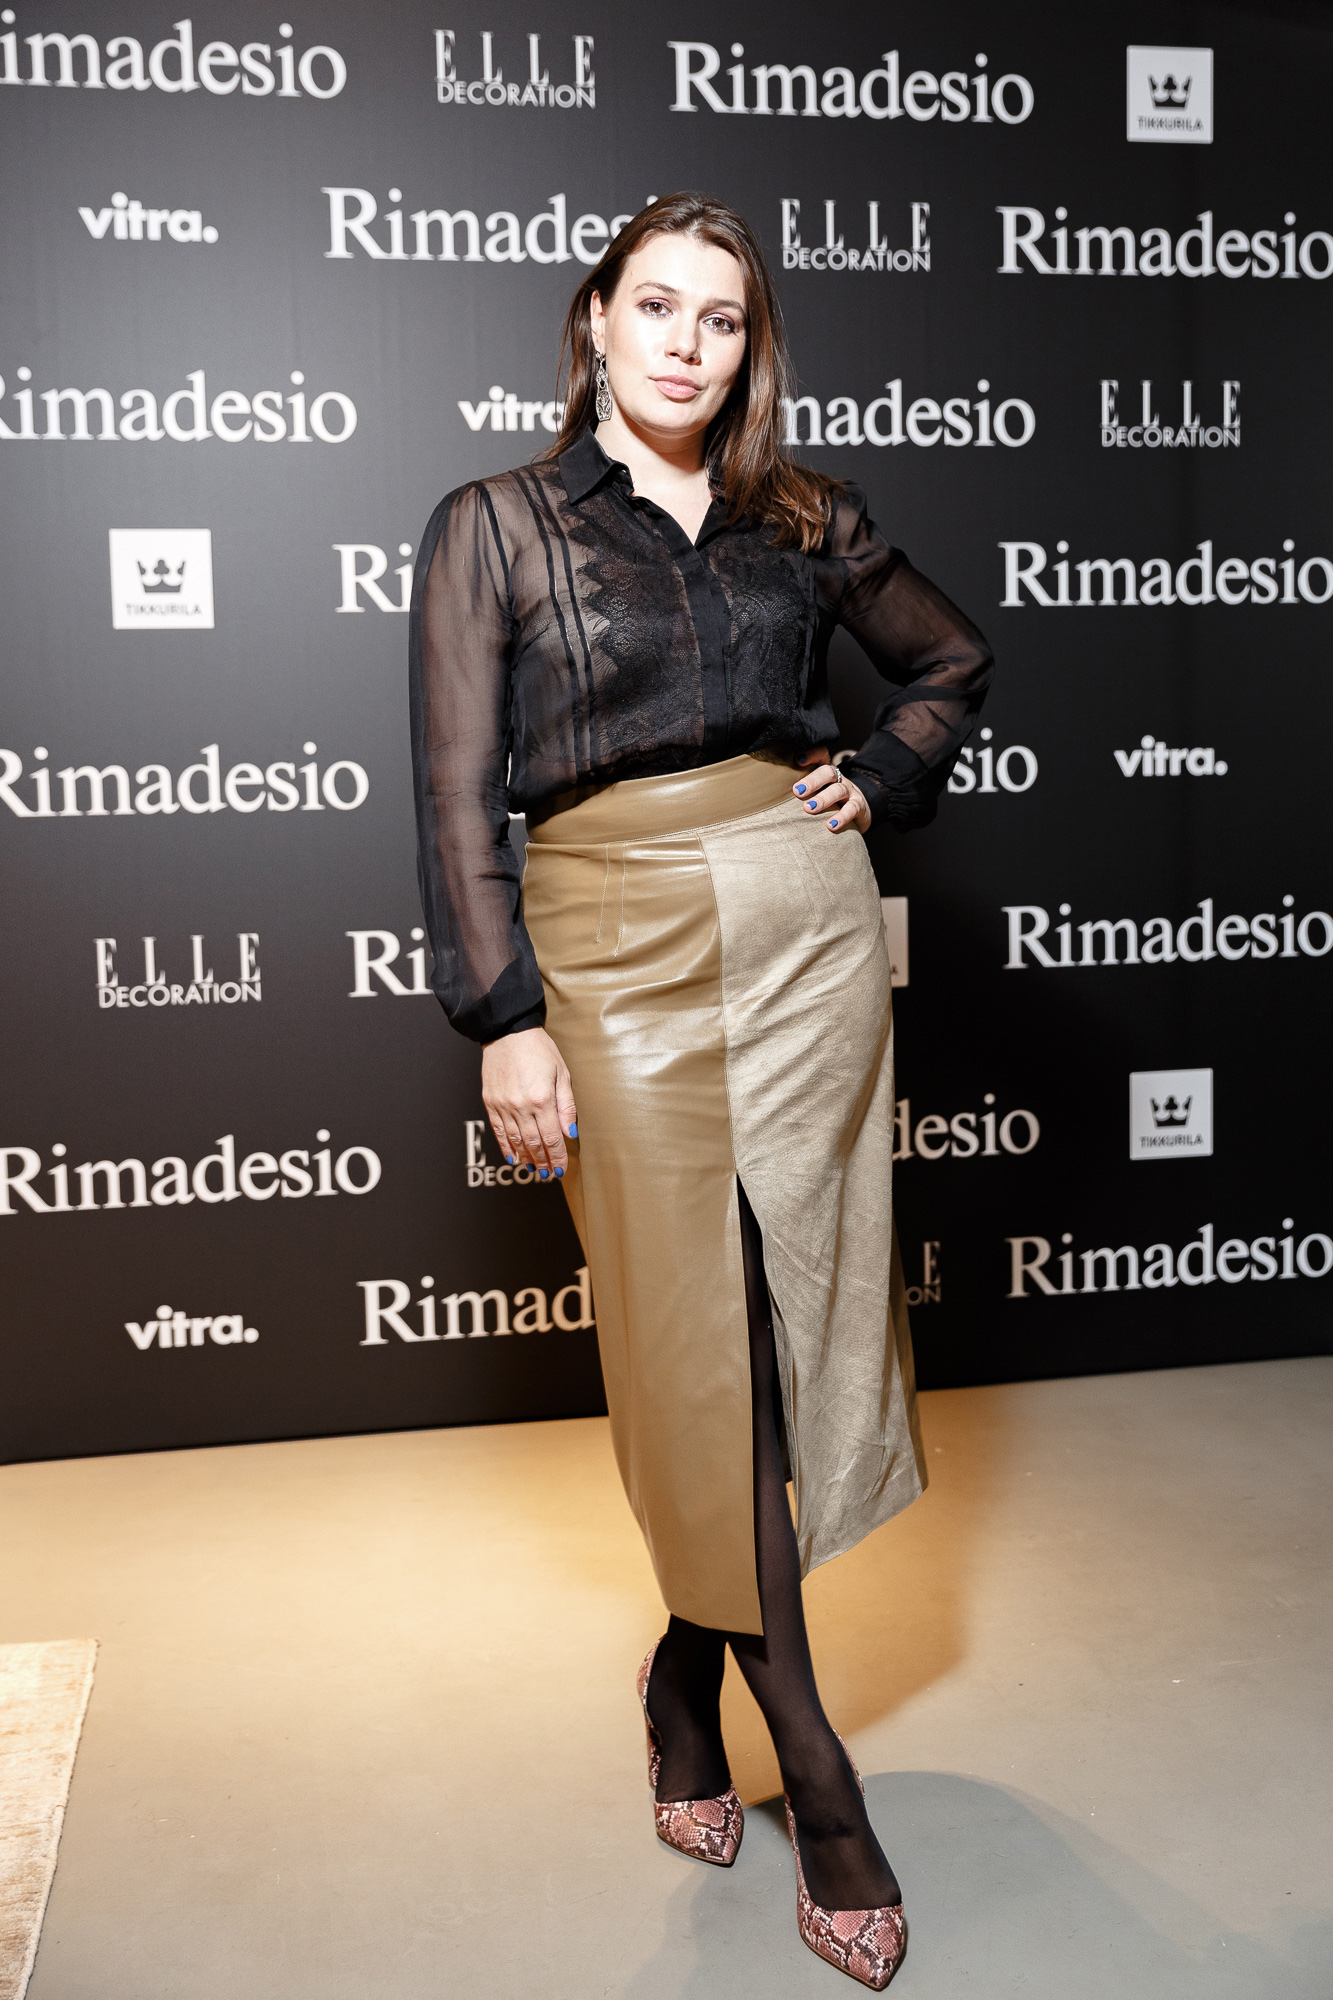 rimadesio-moscow-176